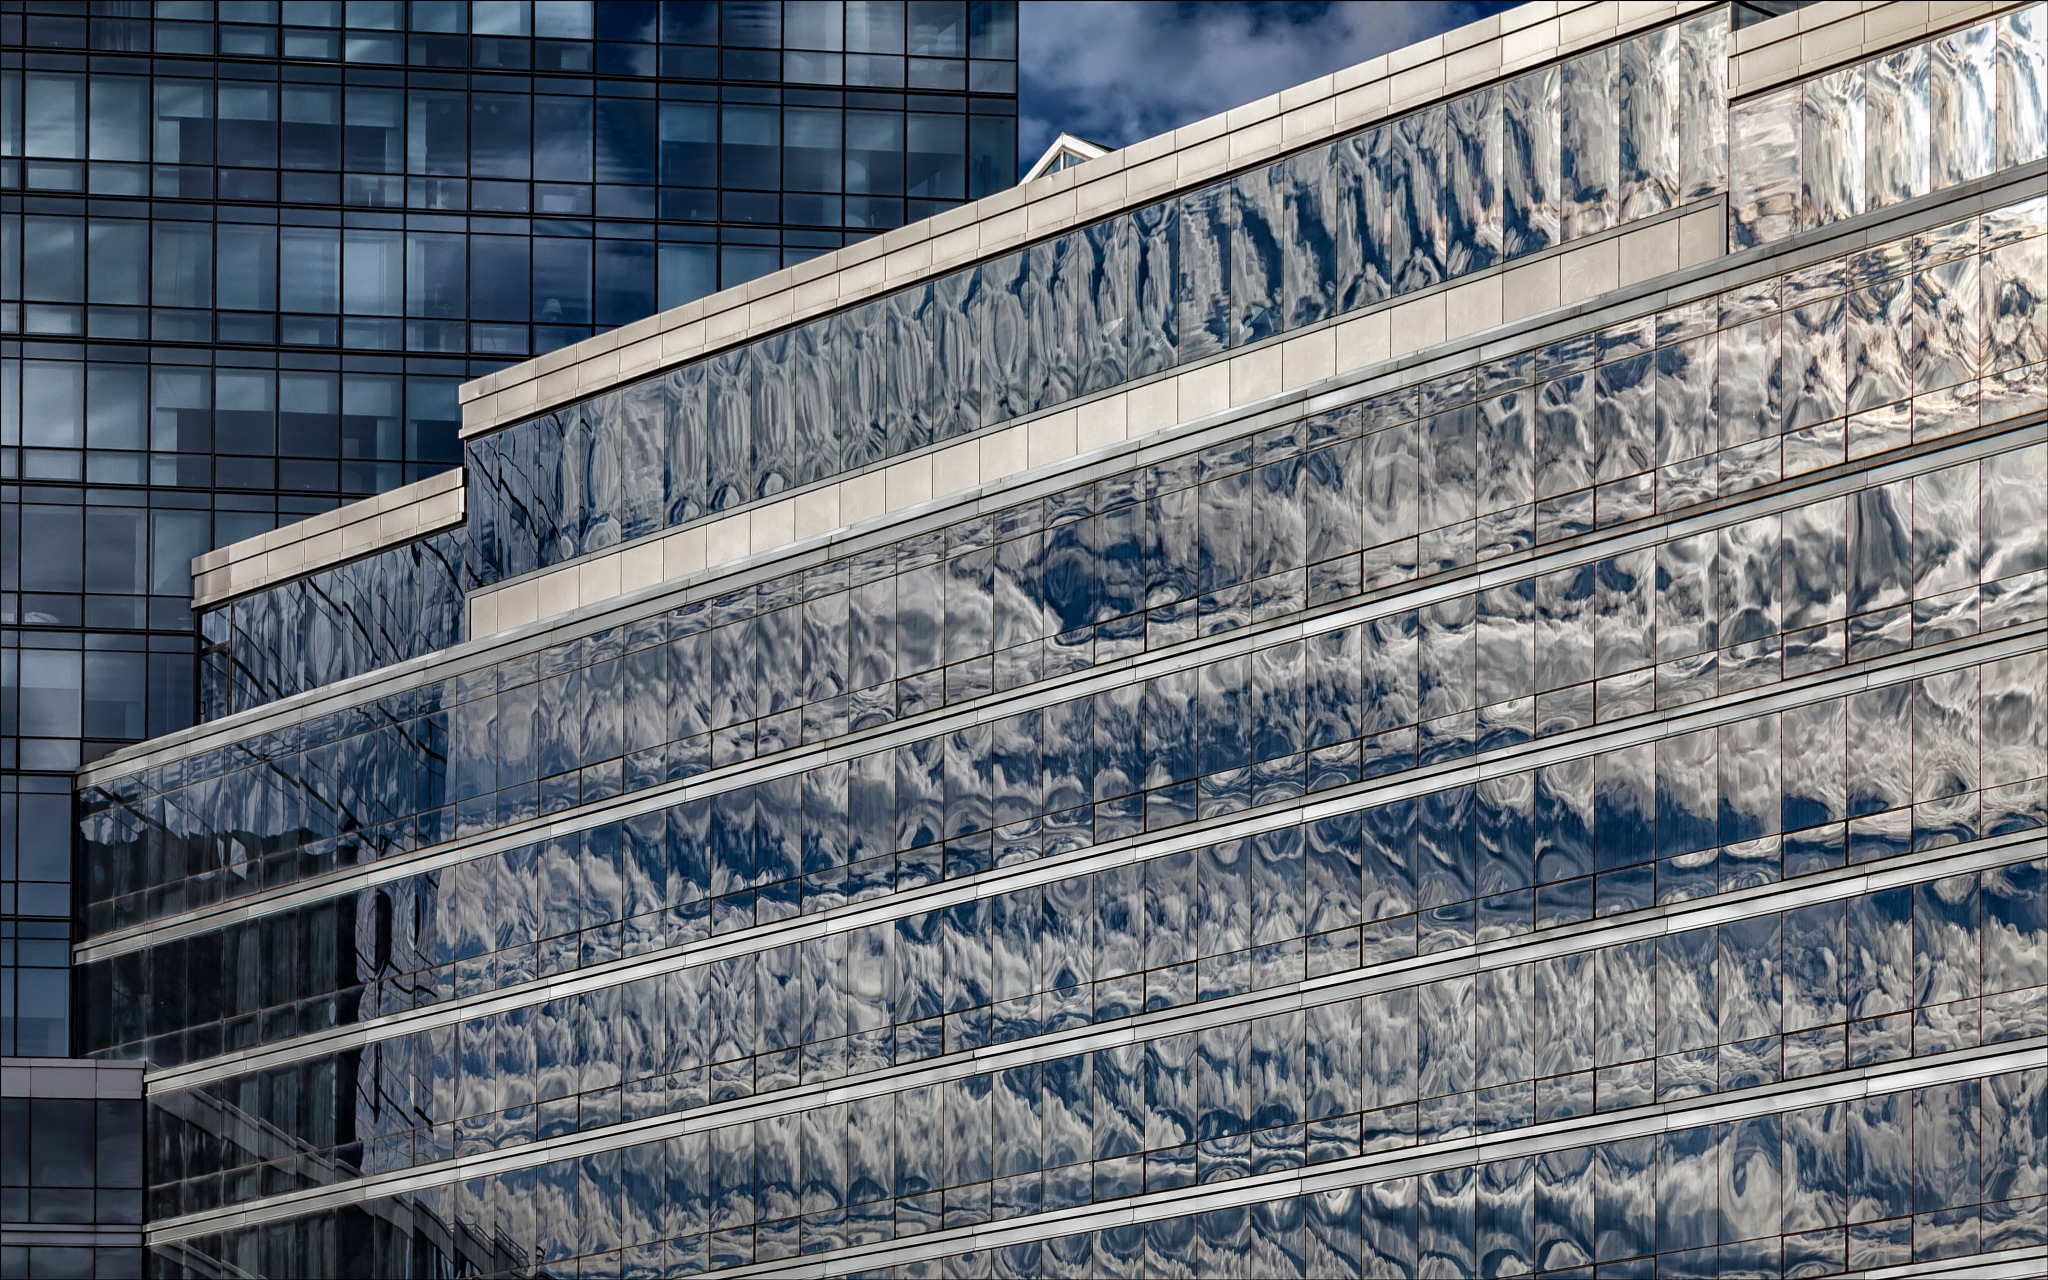 Office Buildings and  Reflected Clouds by robertullmann